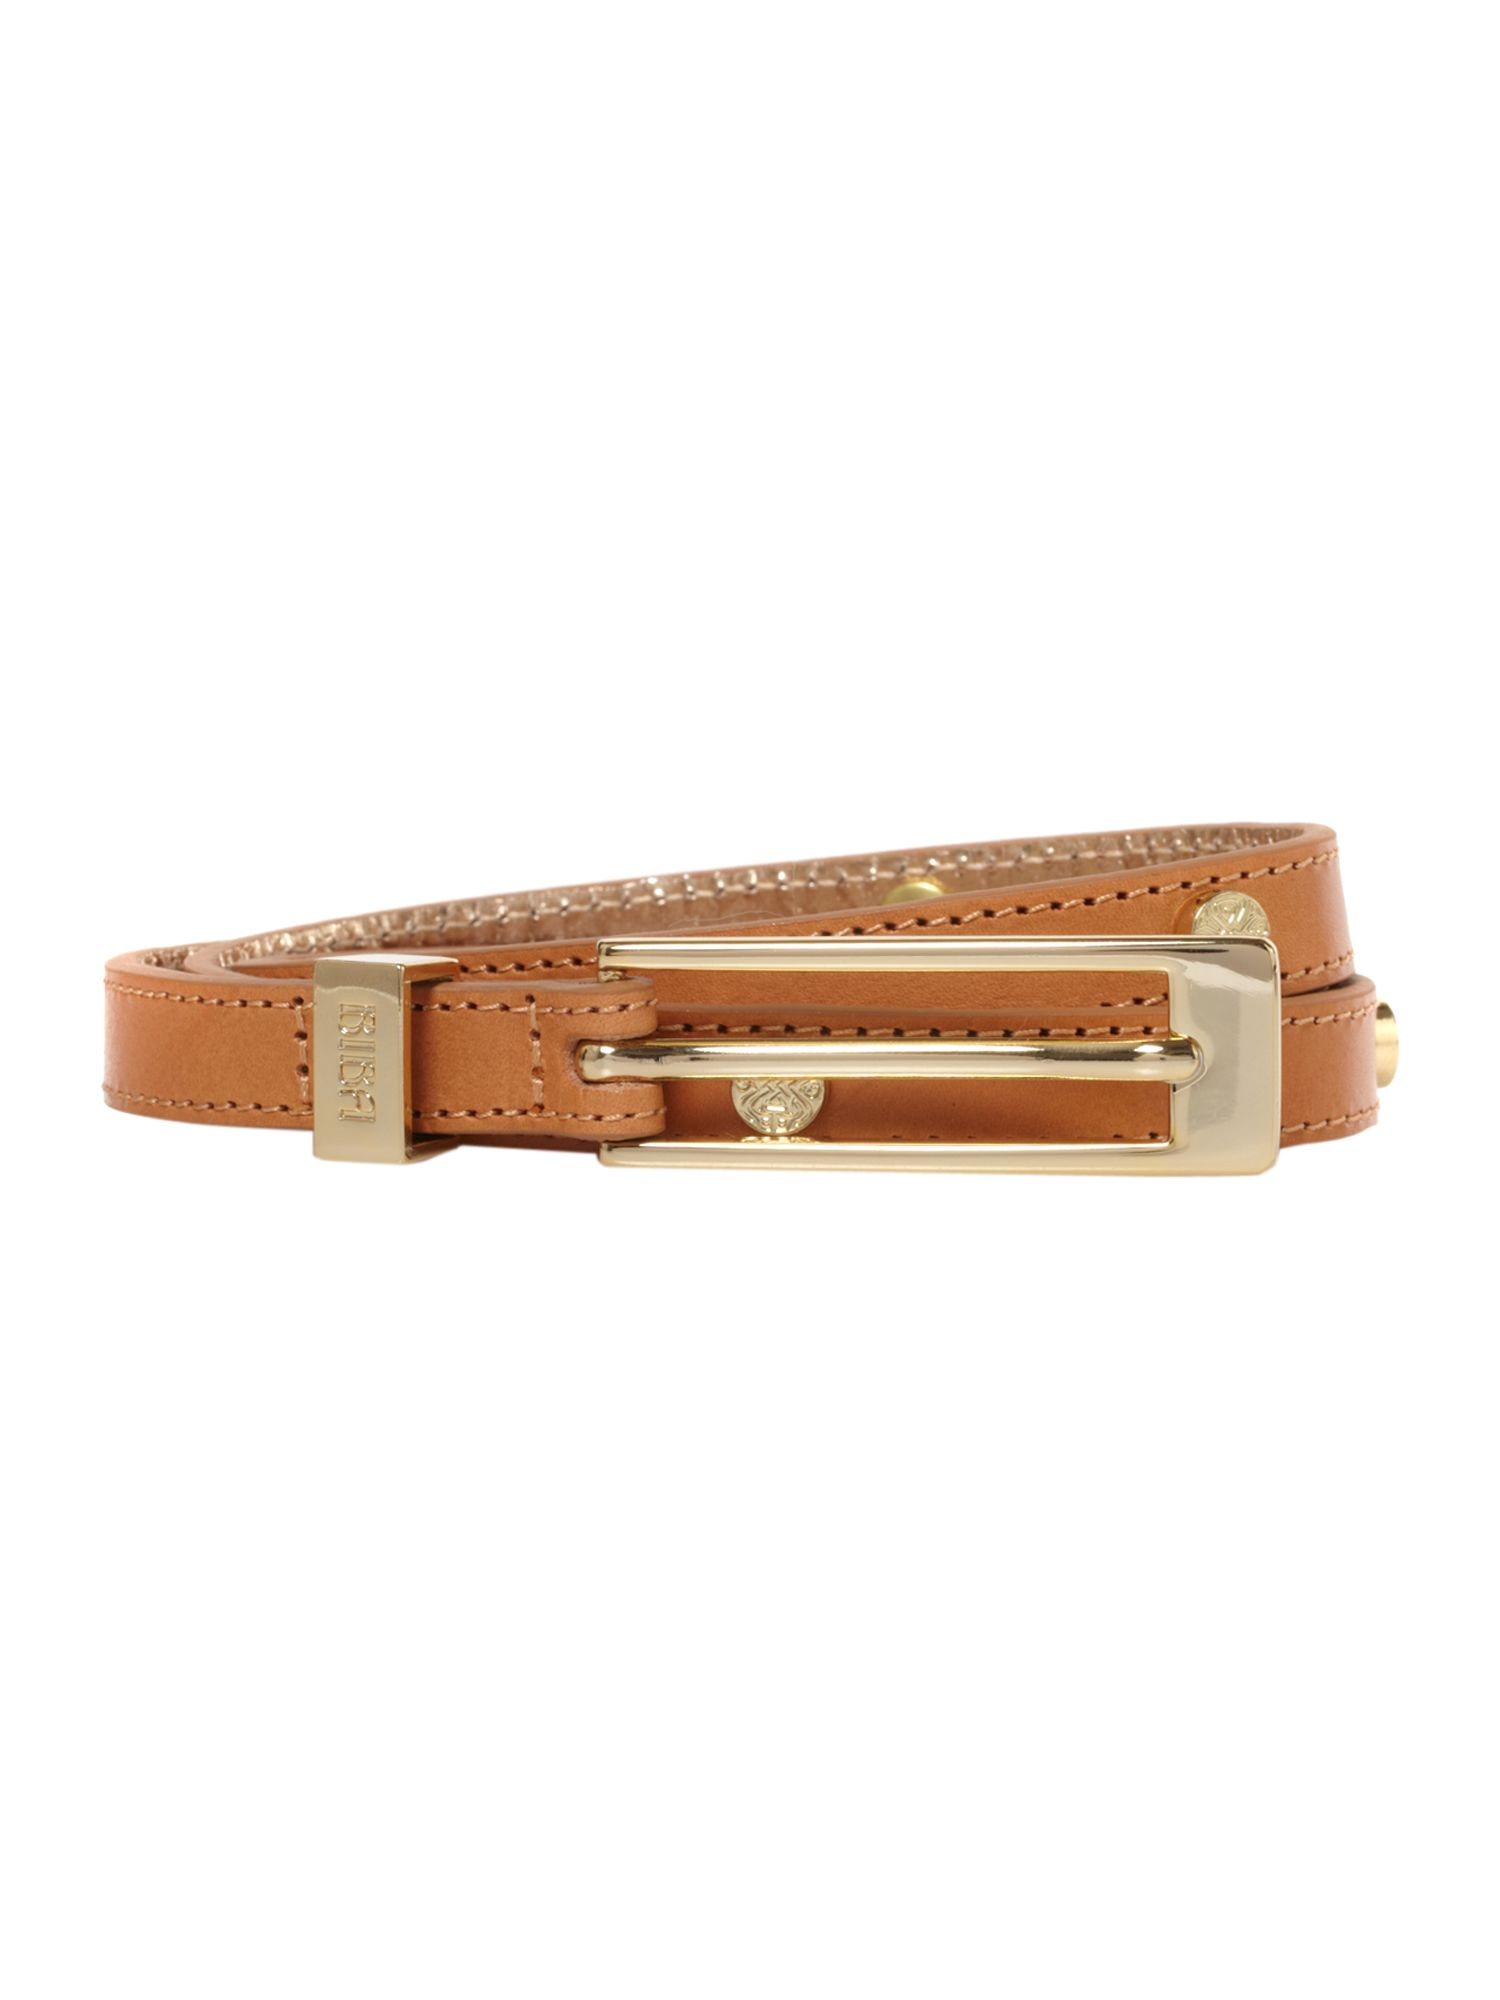 Skinny belt with rivets